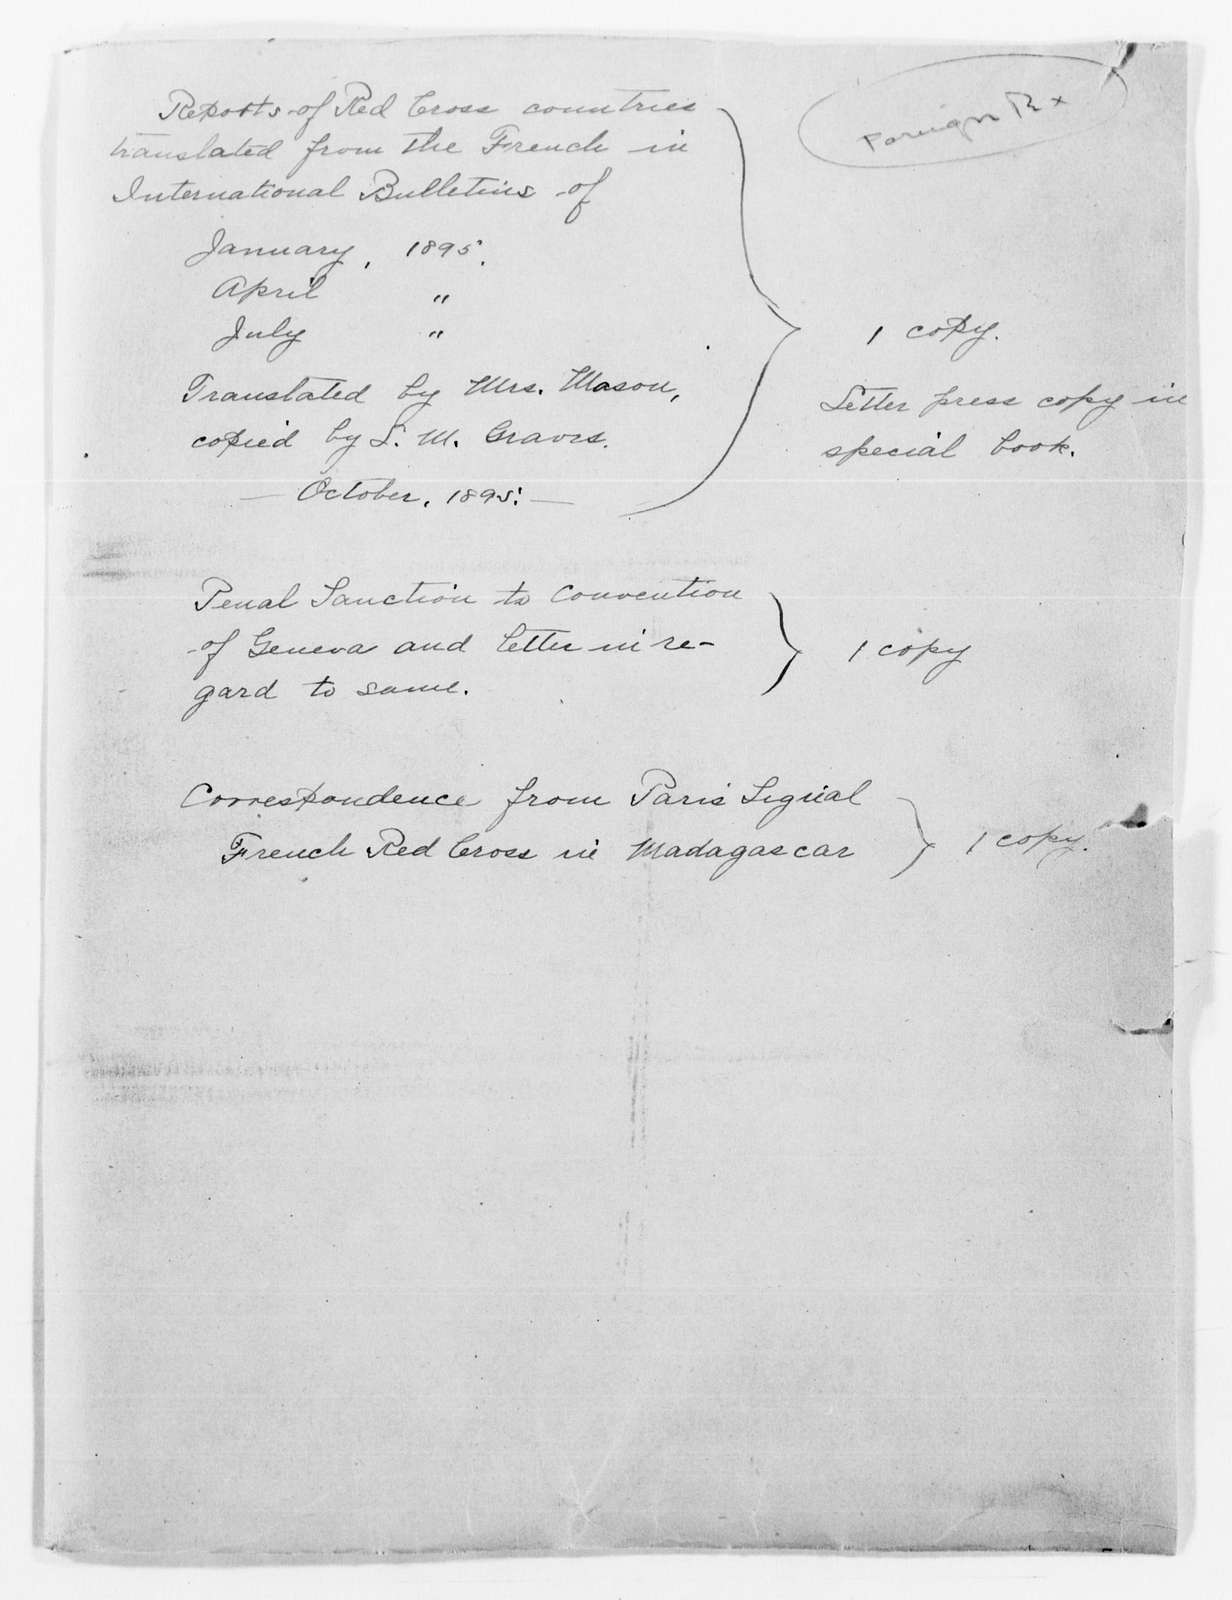 Clara Barton Papers: Red Cross File, 1863-1957; International Committee of the Red Cross, 1863-1919; International Bulletin of the Society of the Red Cross, translations, 1895